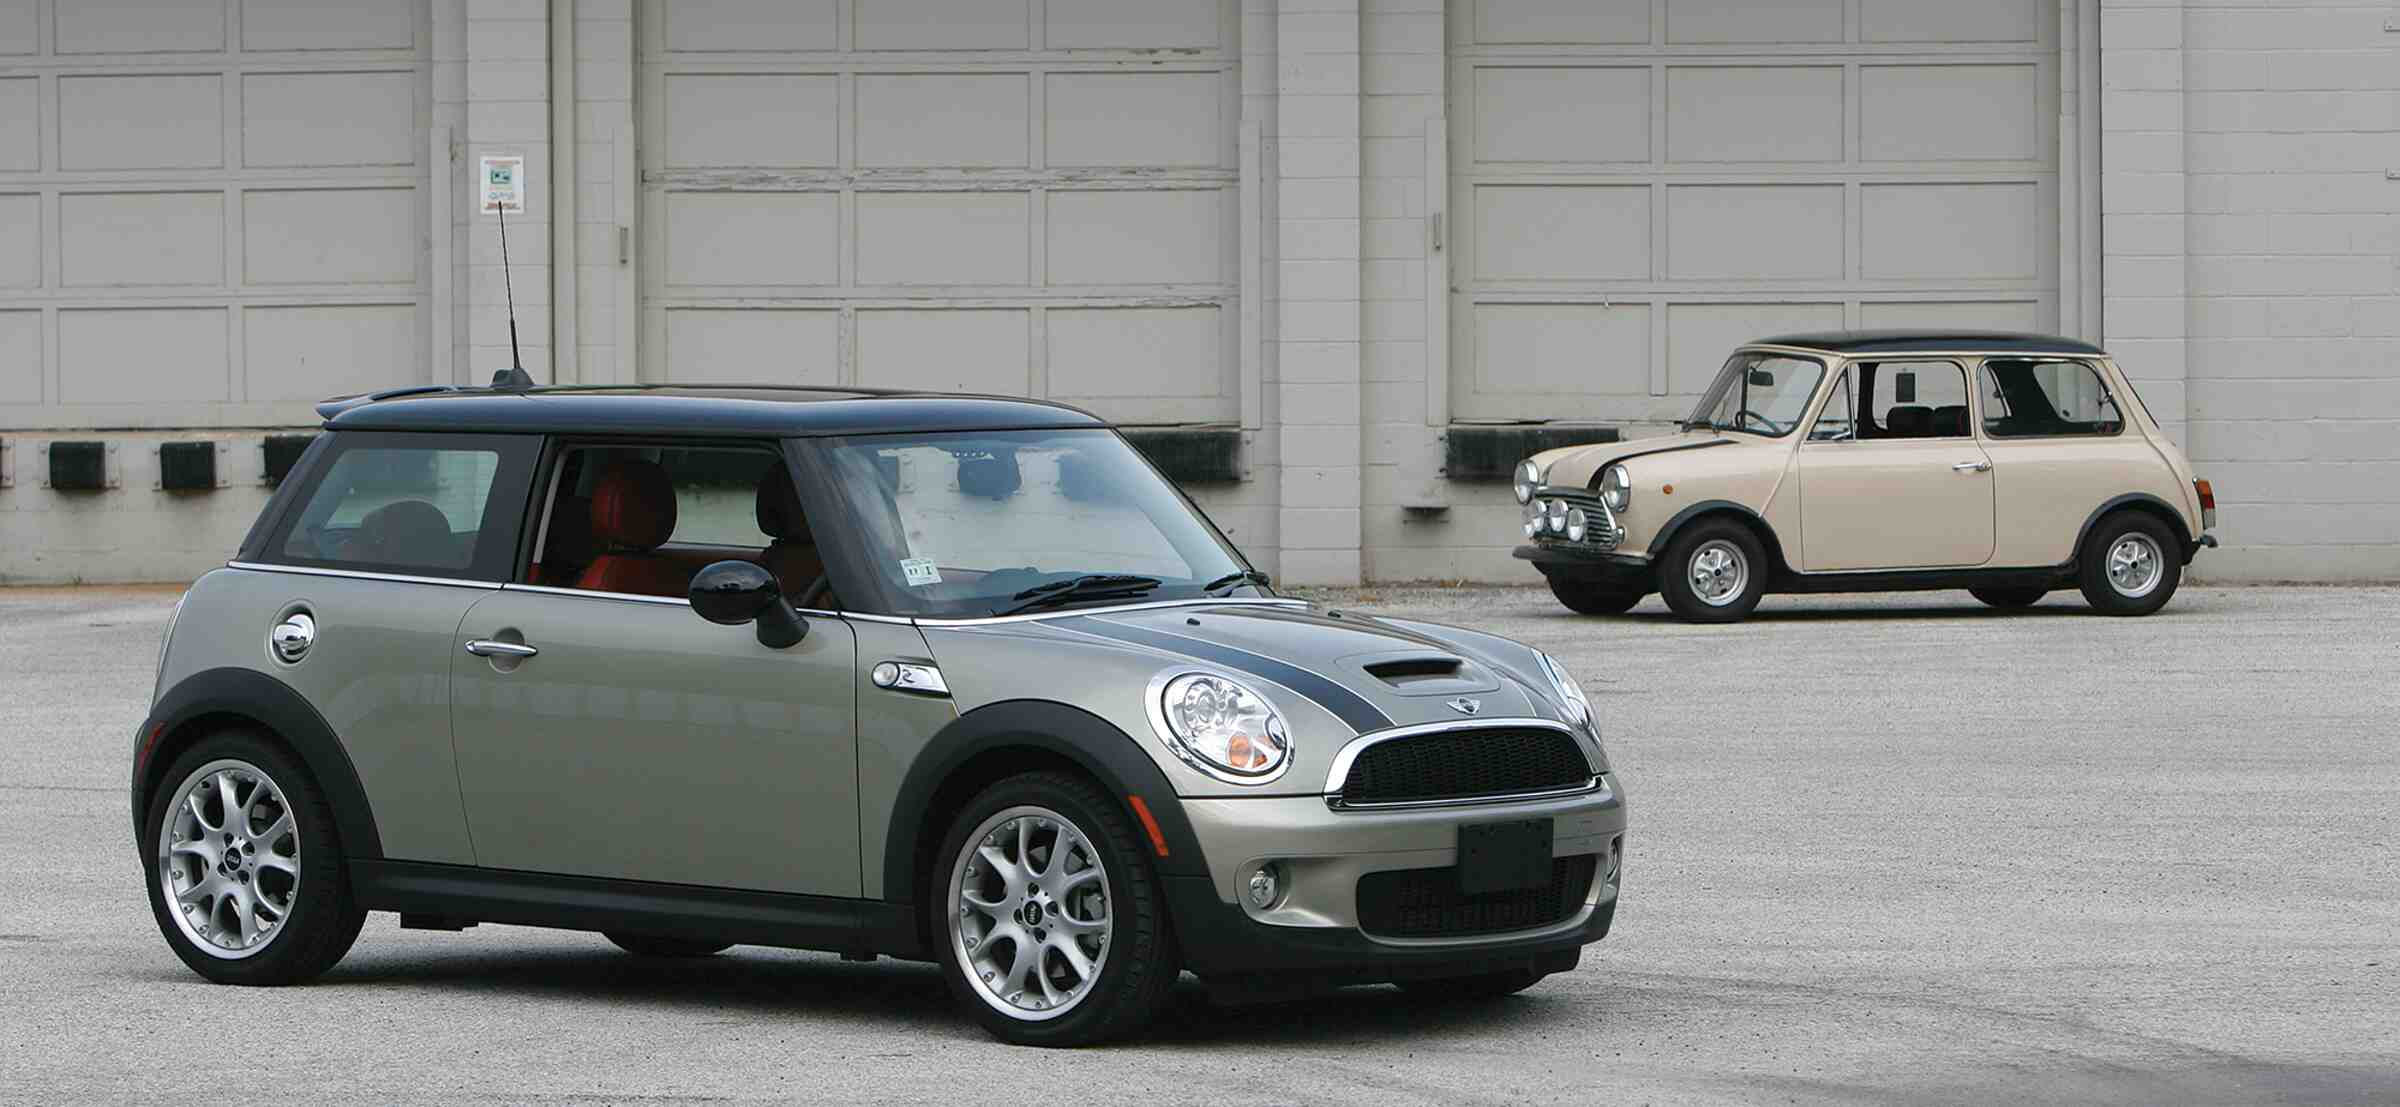 r56 for sale